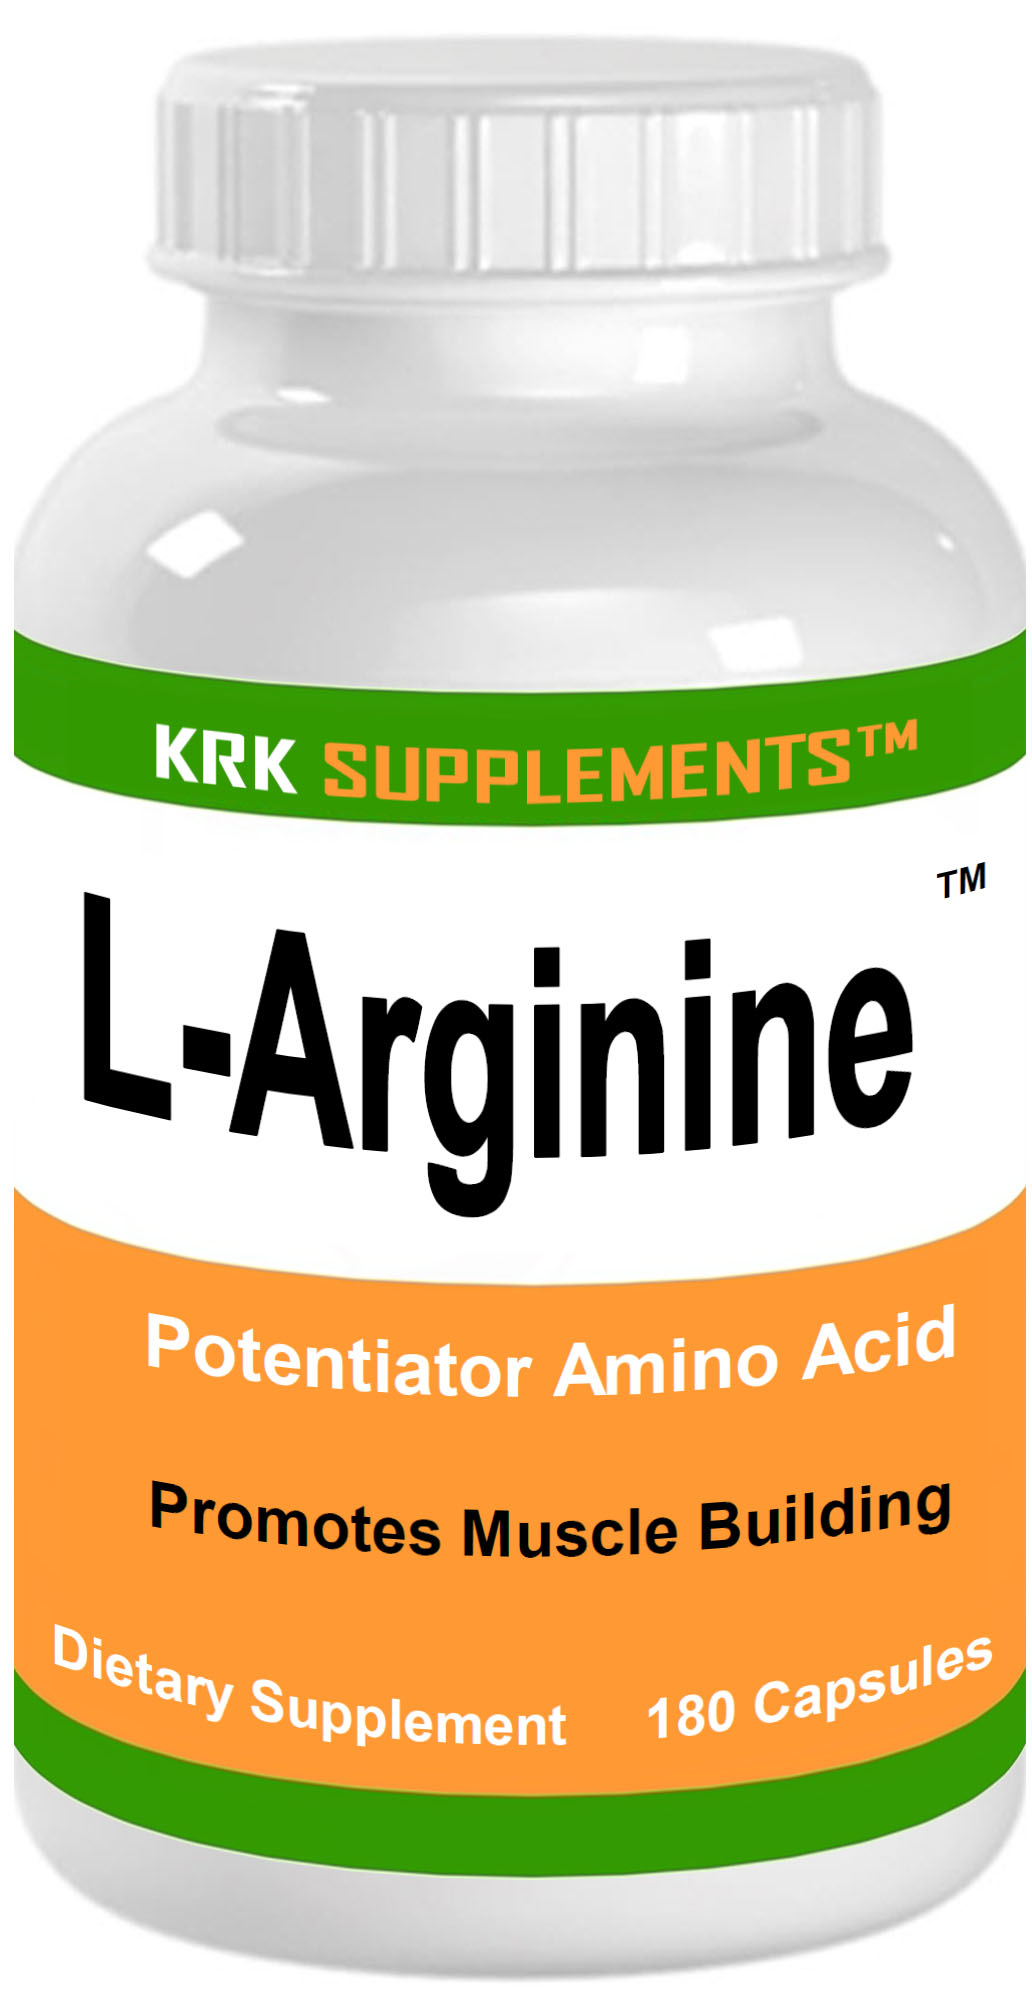 Acetyl-L-Carnitine: Uses, Side Effects, Interactions ...